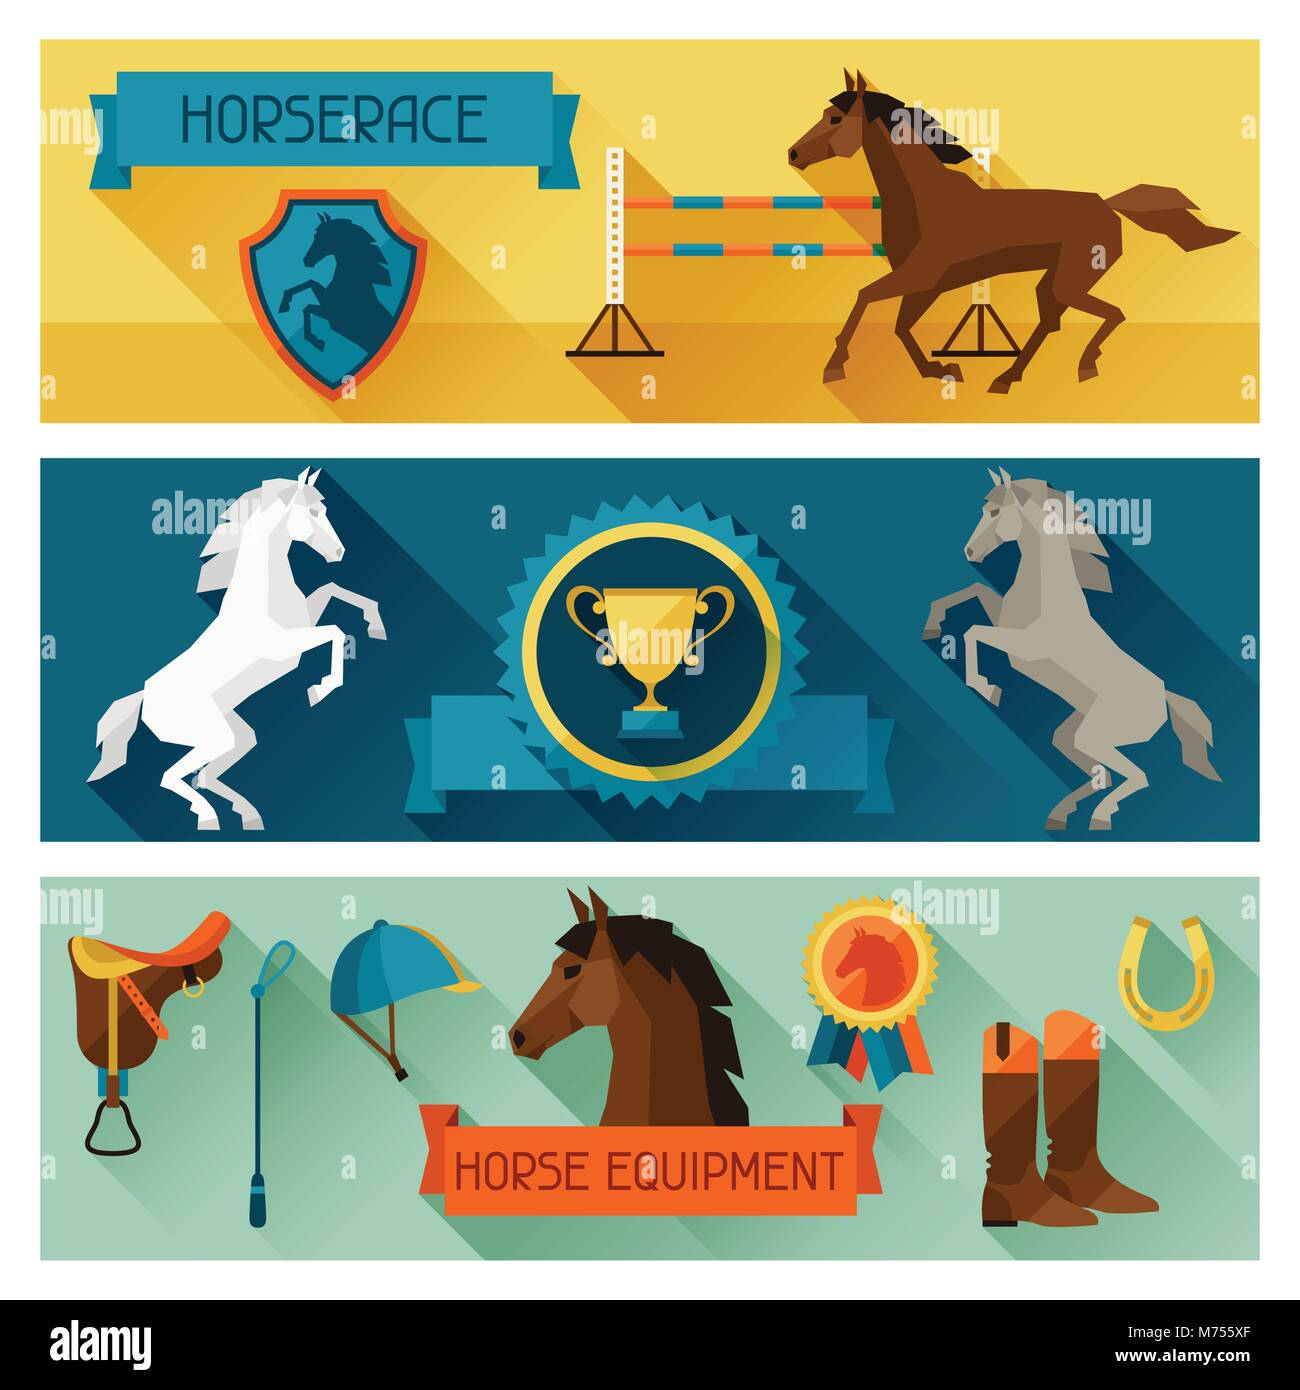 Horizontal banners with horse equipment in flat style - Stock Image